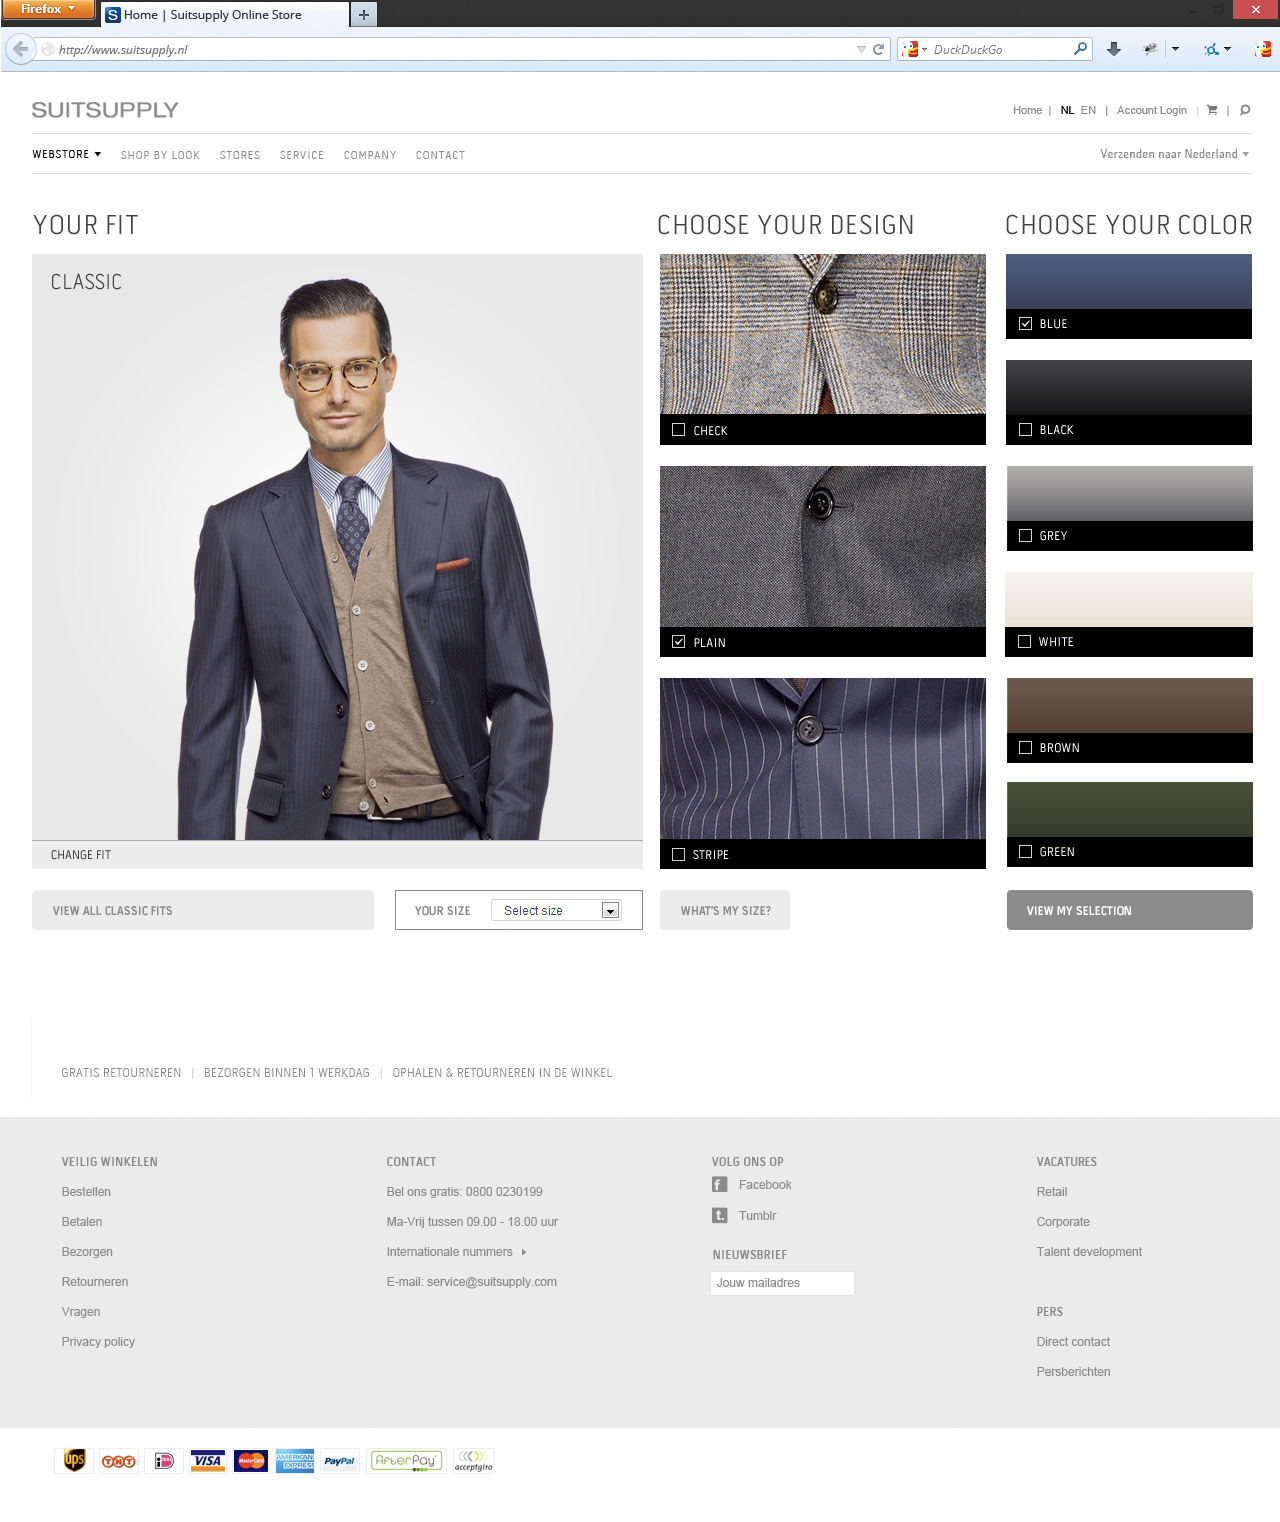 Suitsupply select style page